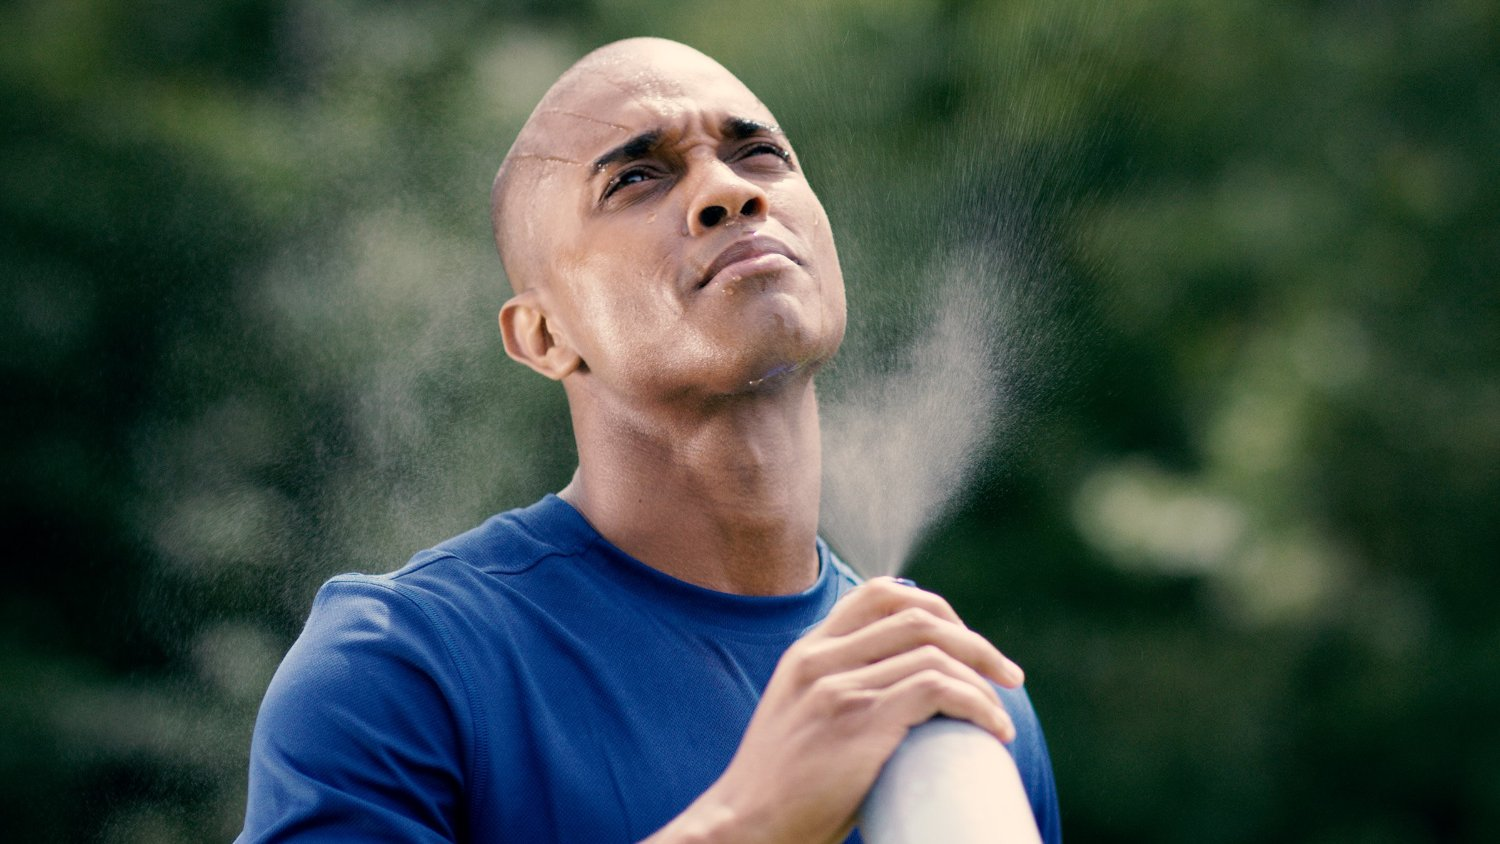 Man-Misting-Himself-with-O2COOL-Mist-n-Spray-Misting-Water-Bottle